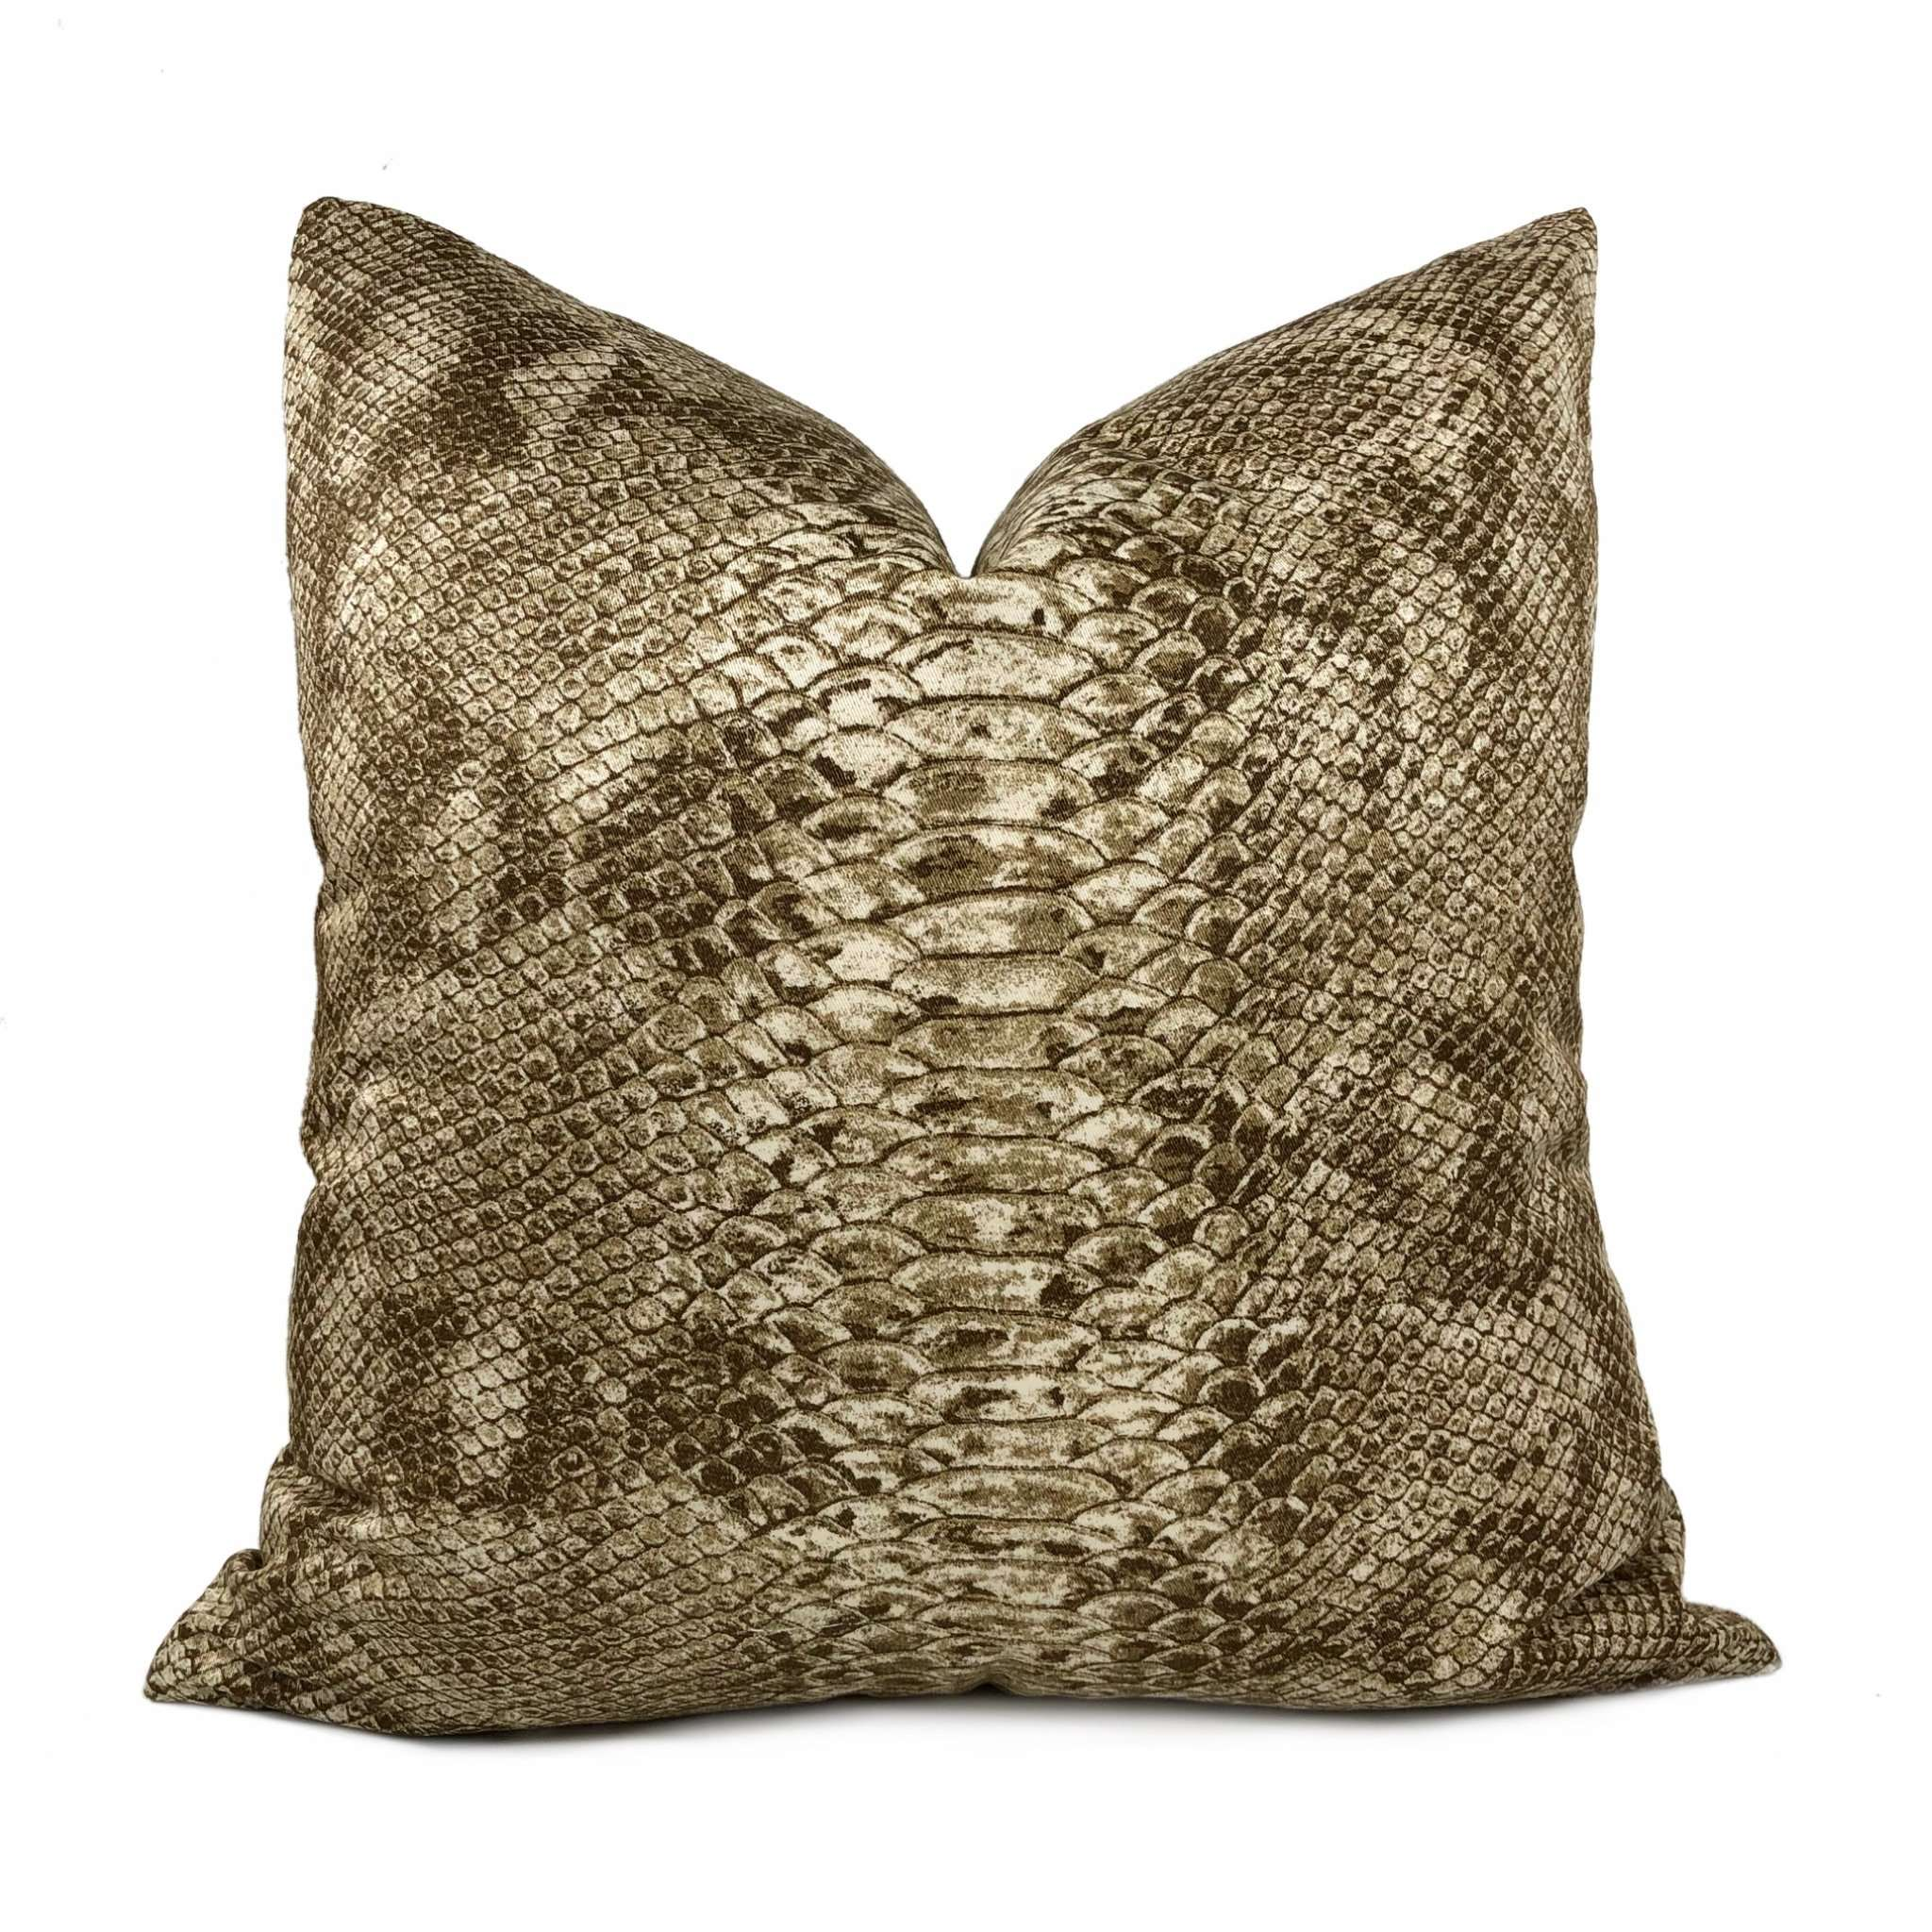 Tan Brown Faux Snakeskin Reptile Cotton Print Pillow Cover